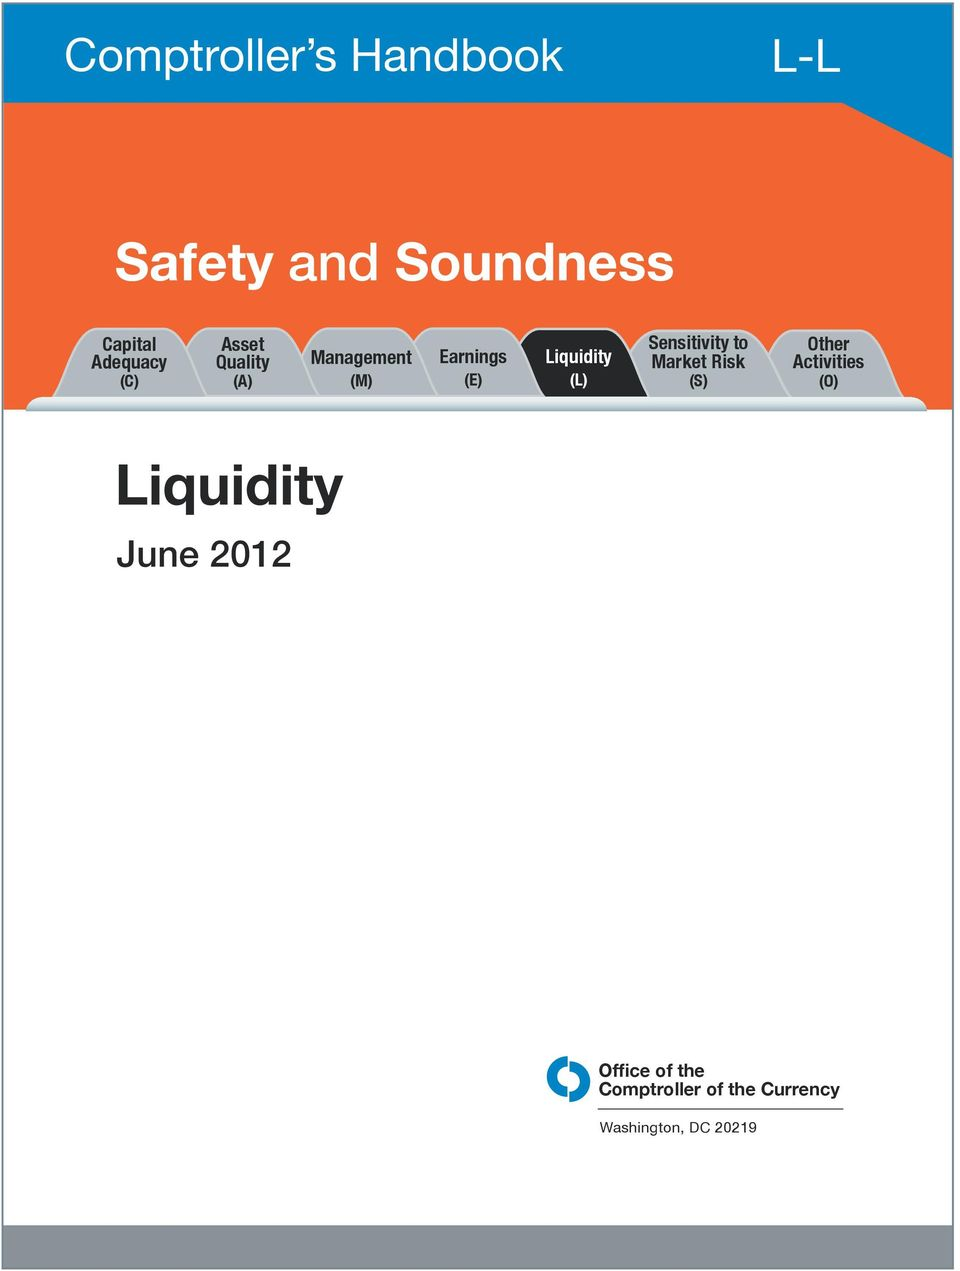 Sensitivity to Market Risk (S) Other Activities (O) Liquidity